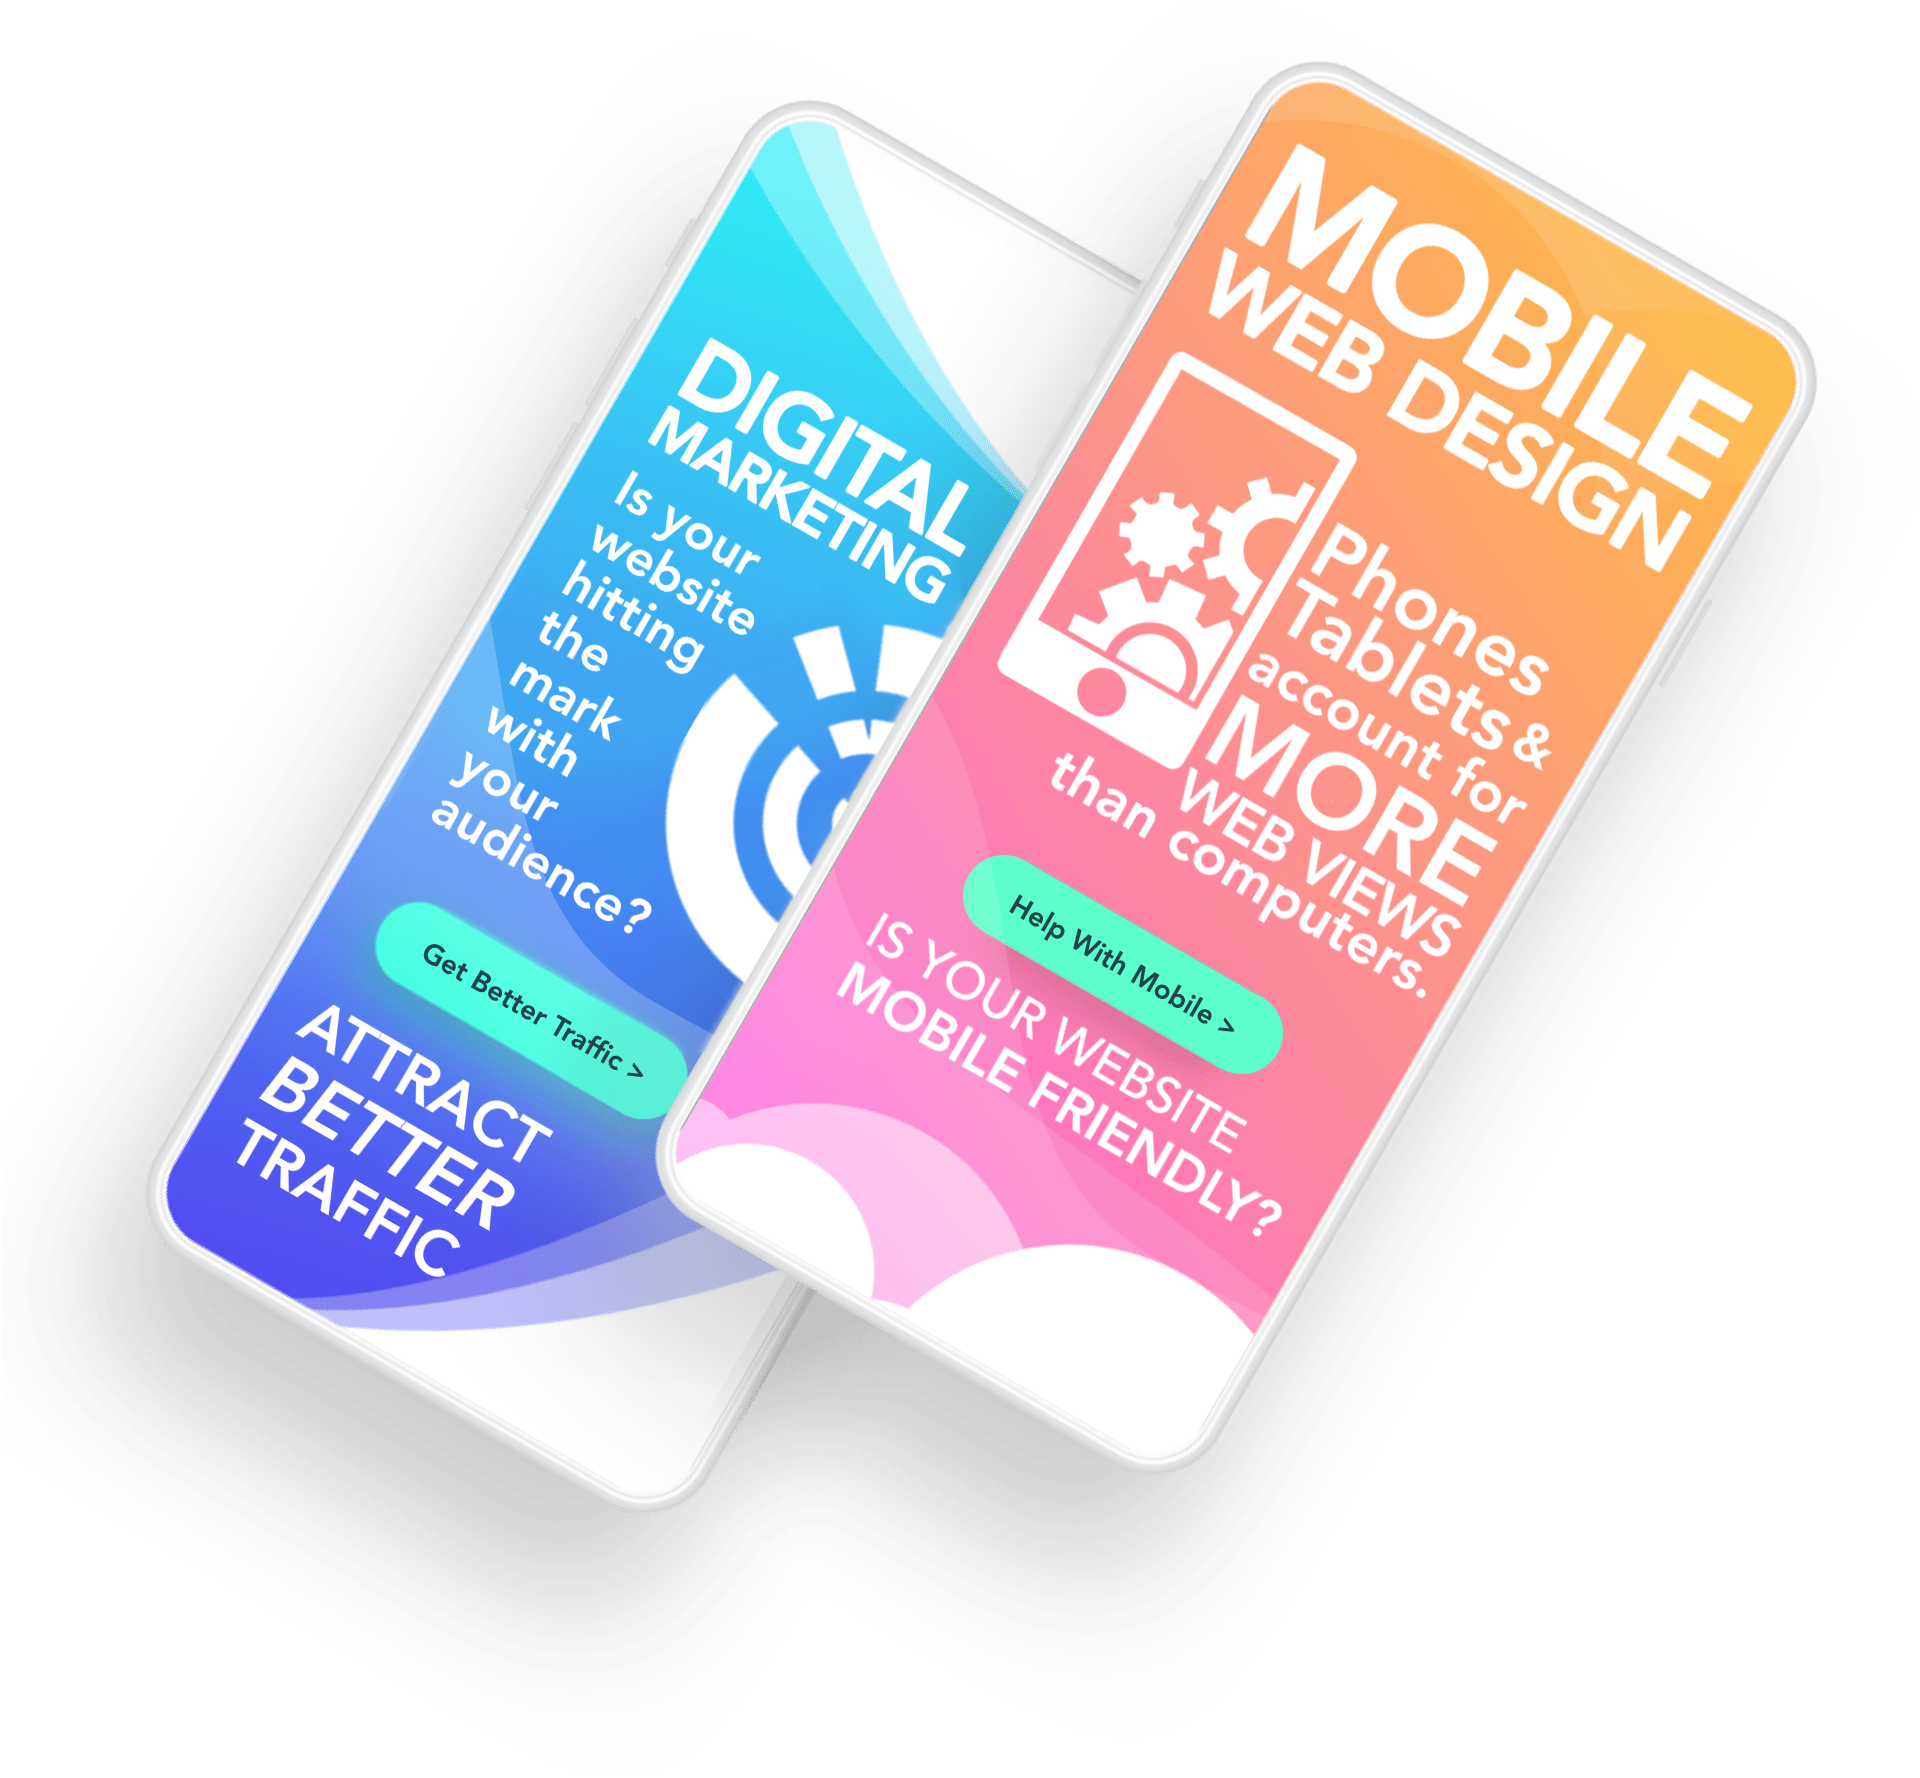 we help with digital marketing and mobile web design